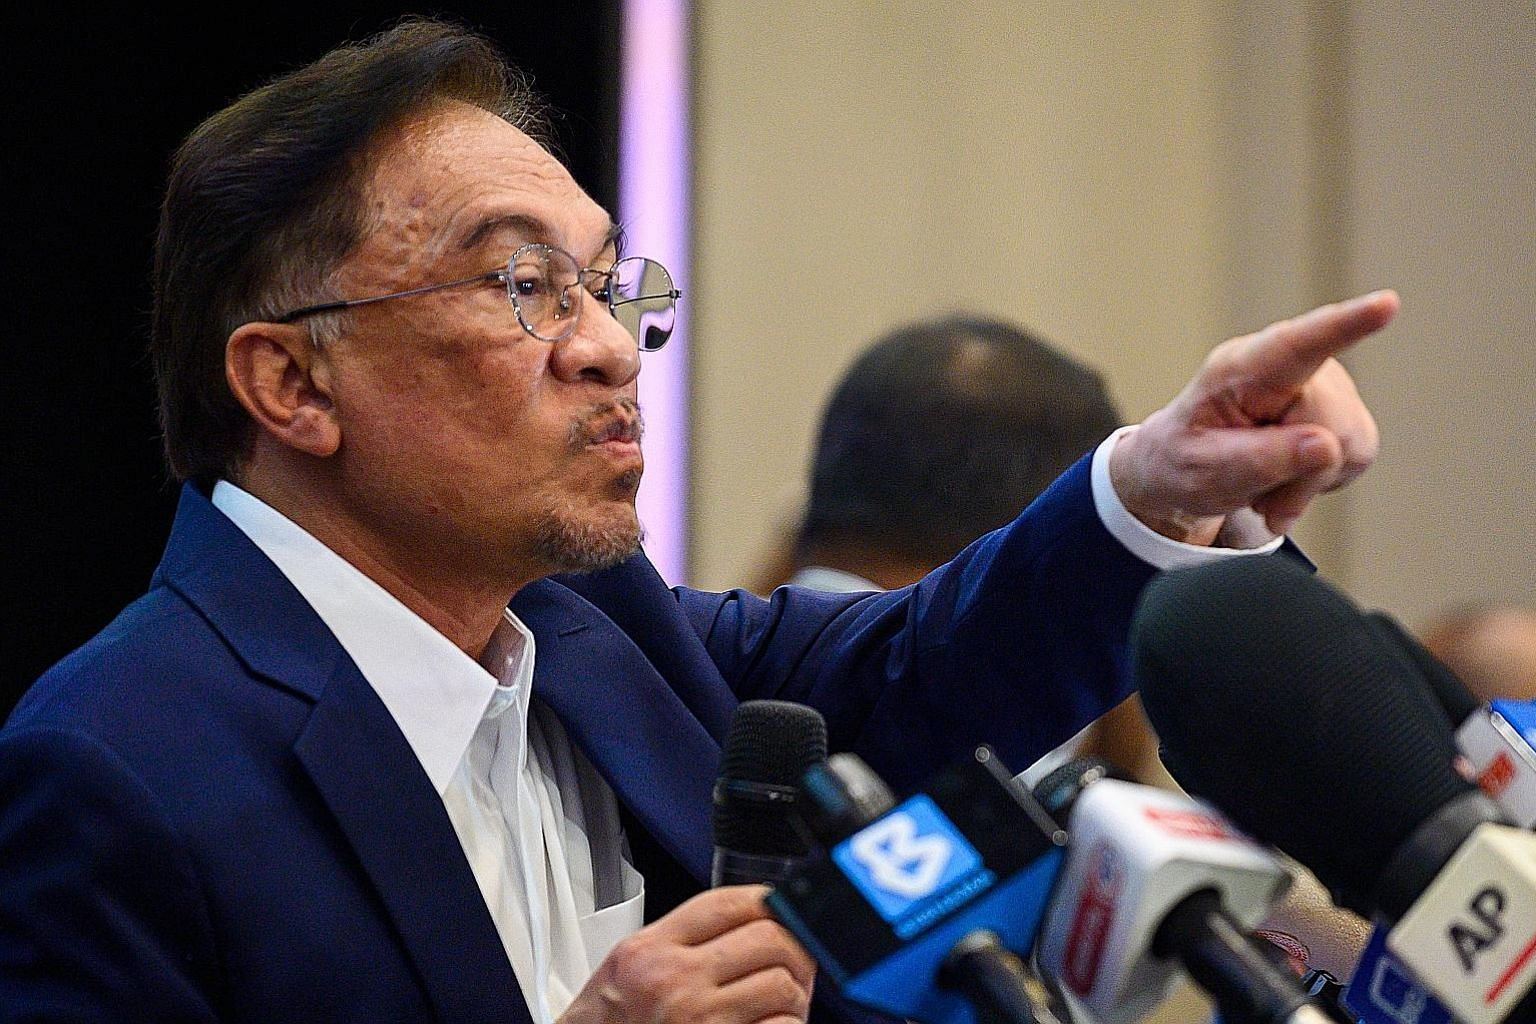 """Malaysian opposition leader Anwar Ibrahim told a news conference at a hotel in Kuala Lumpur yesterday that he has a """"strong, convincing, formidable majority"""" to form a new government, although he declined to reveal the number of MPs on his side. PHOT"""